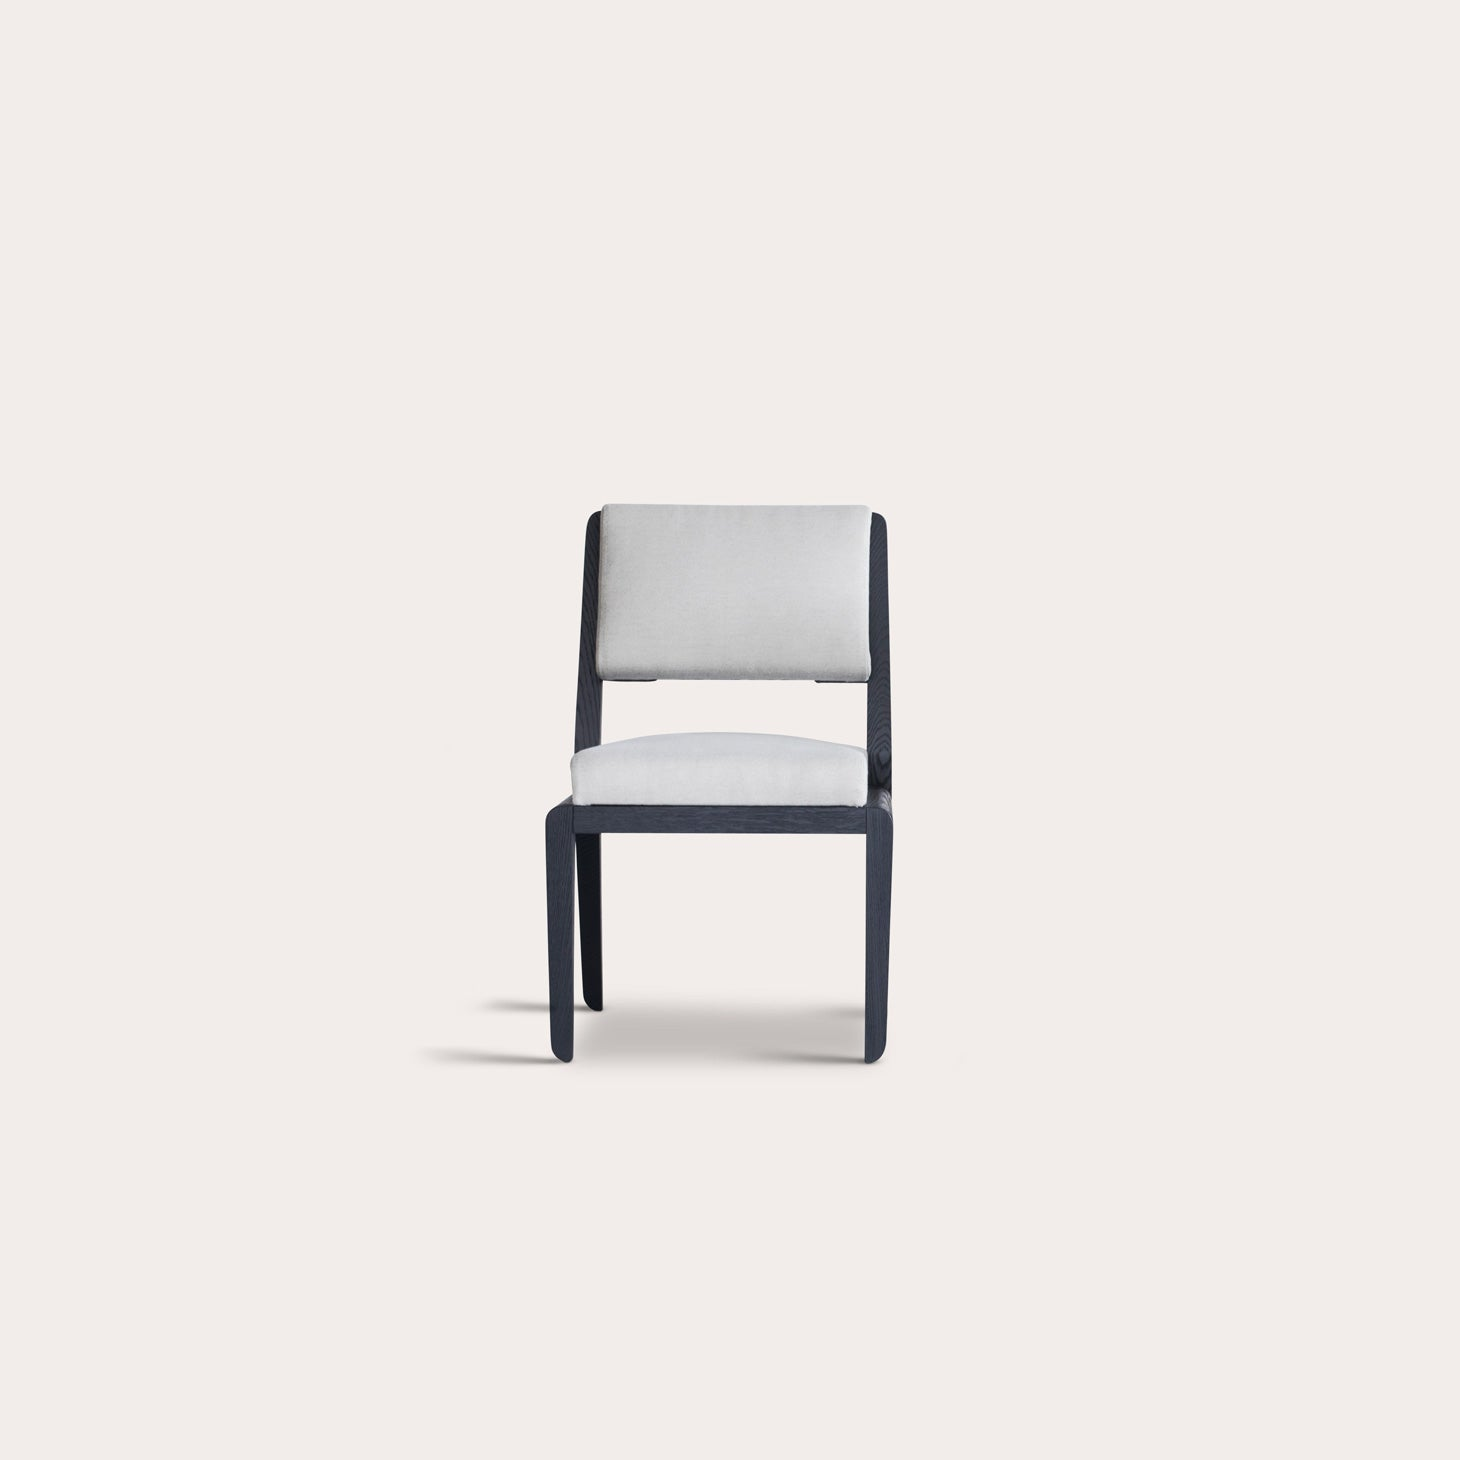 Kitale Dining Chair Seating Xavier Dohr Designer Furniture Sku: 416-120-10036